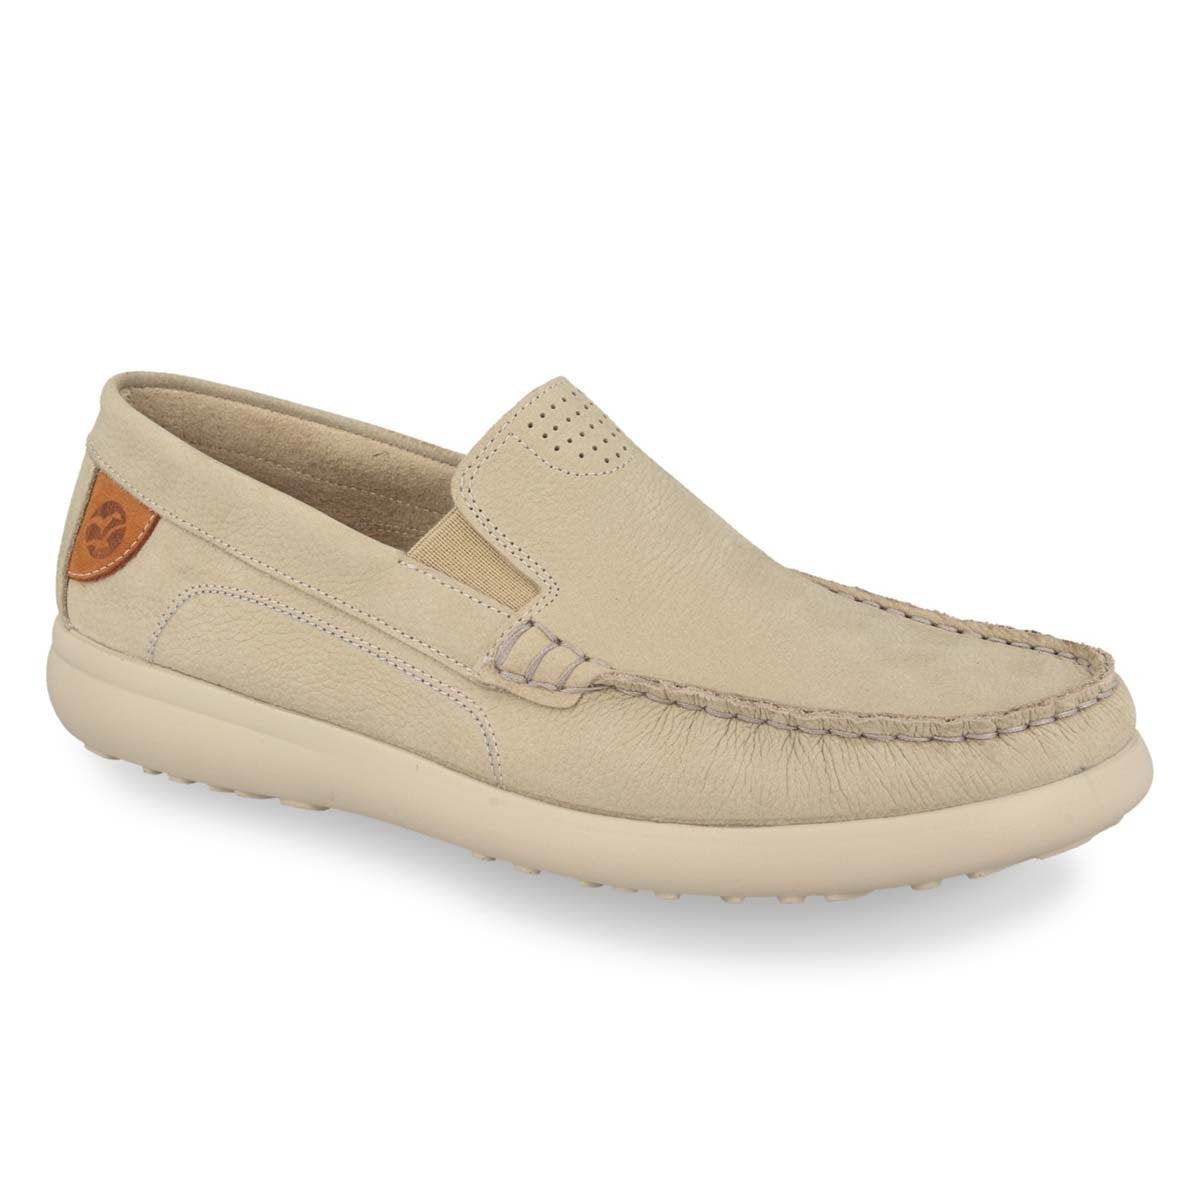 Photo of the Leather Man Mocassin Beige (14013yg)